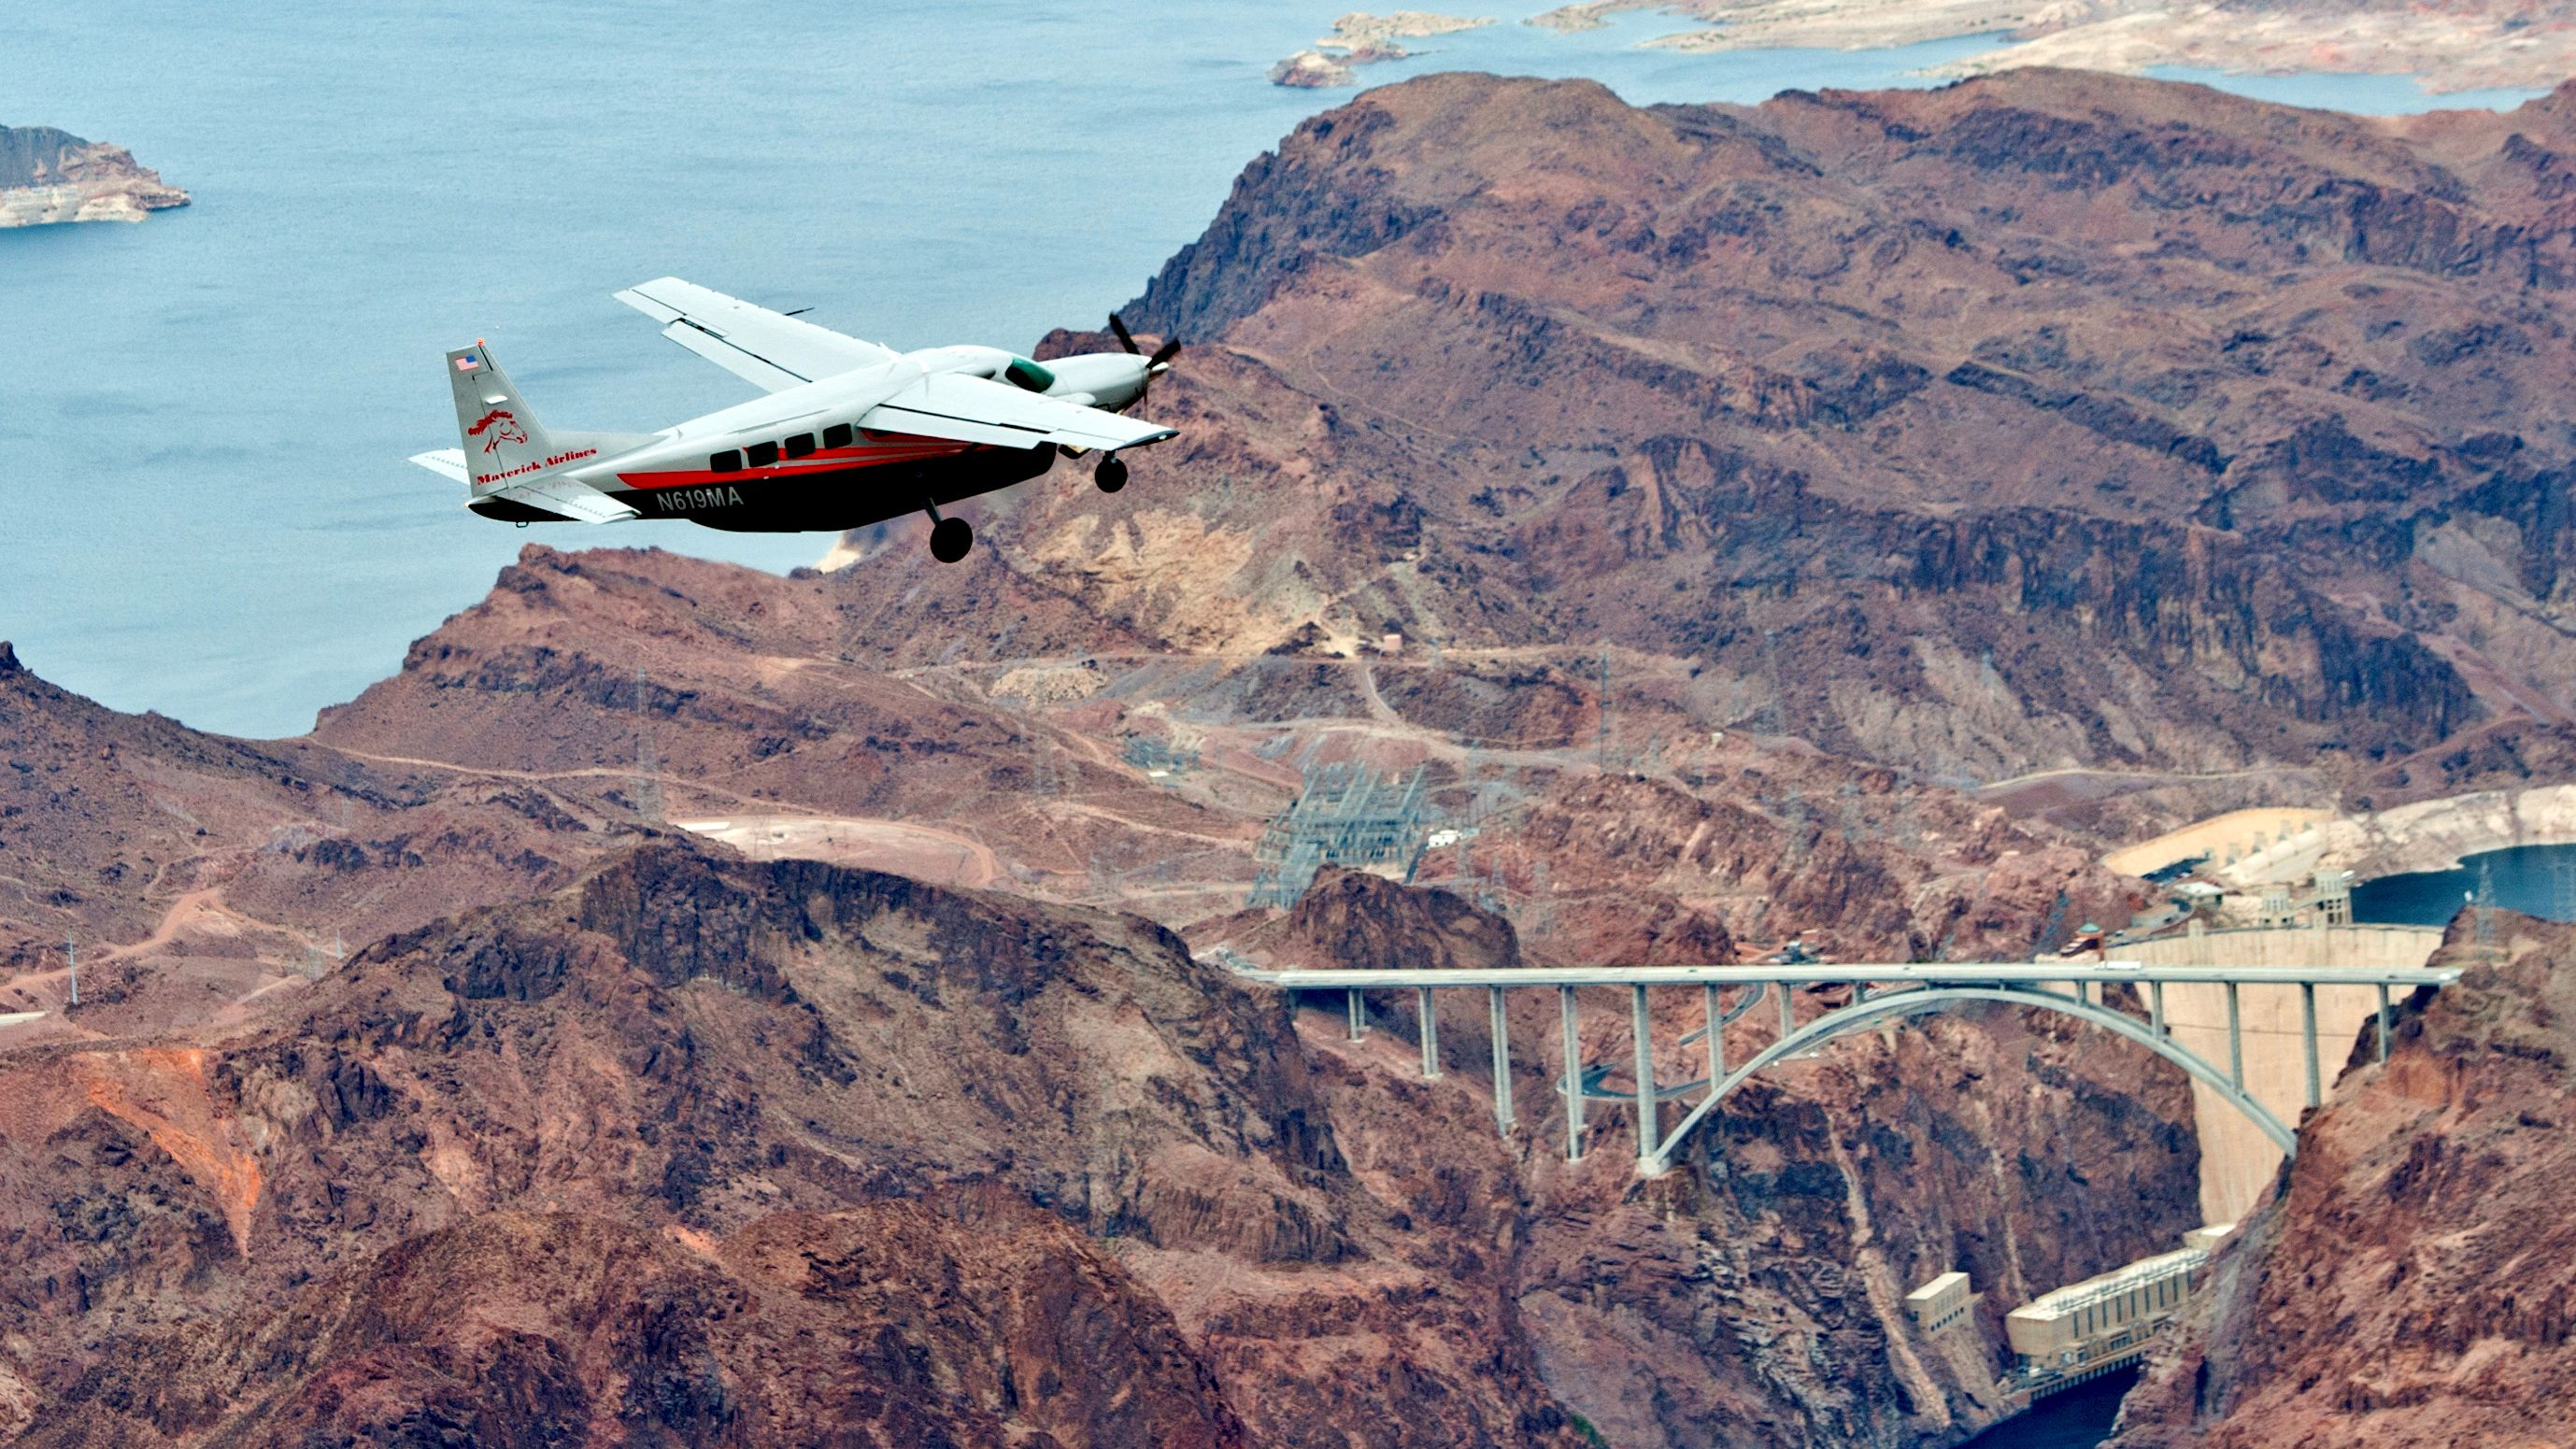 A plane flies over the Grand Canyon, Colorado River, a bridge and the Hoover Dam